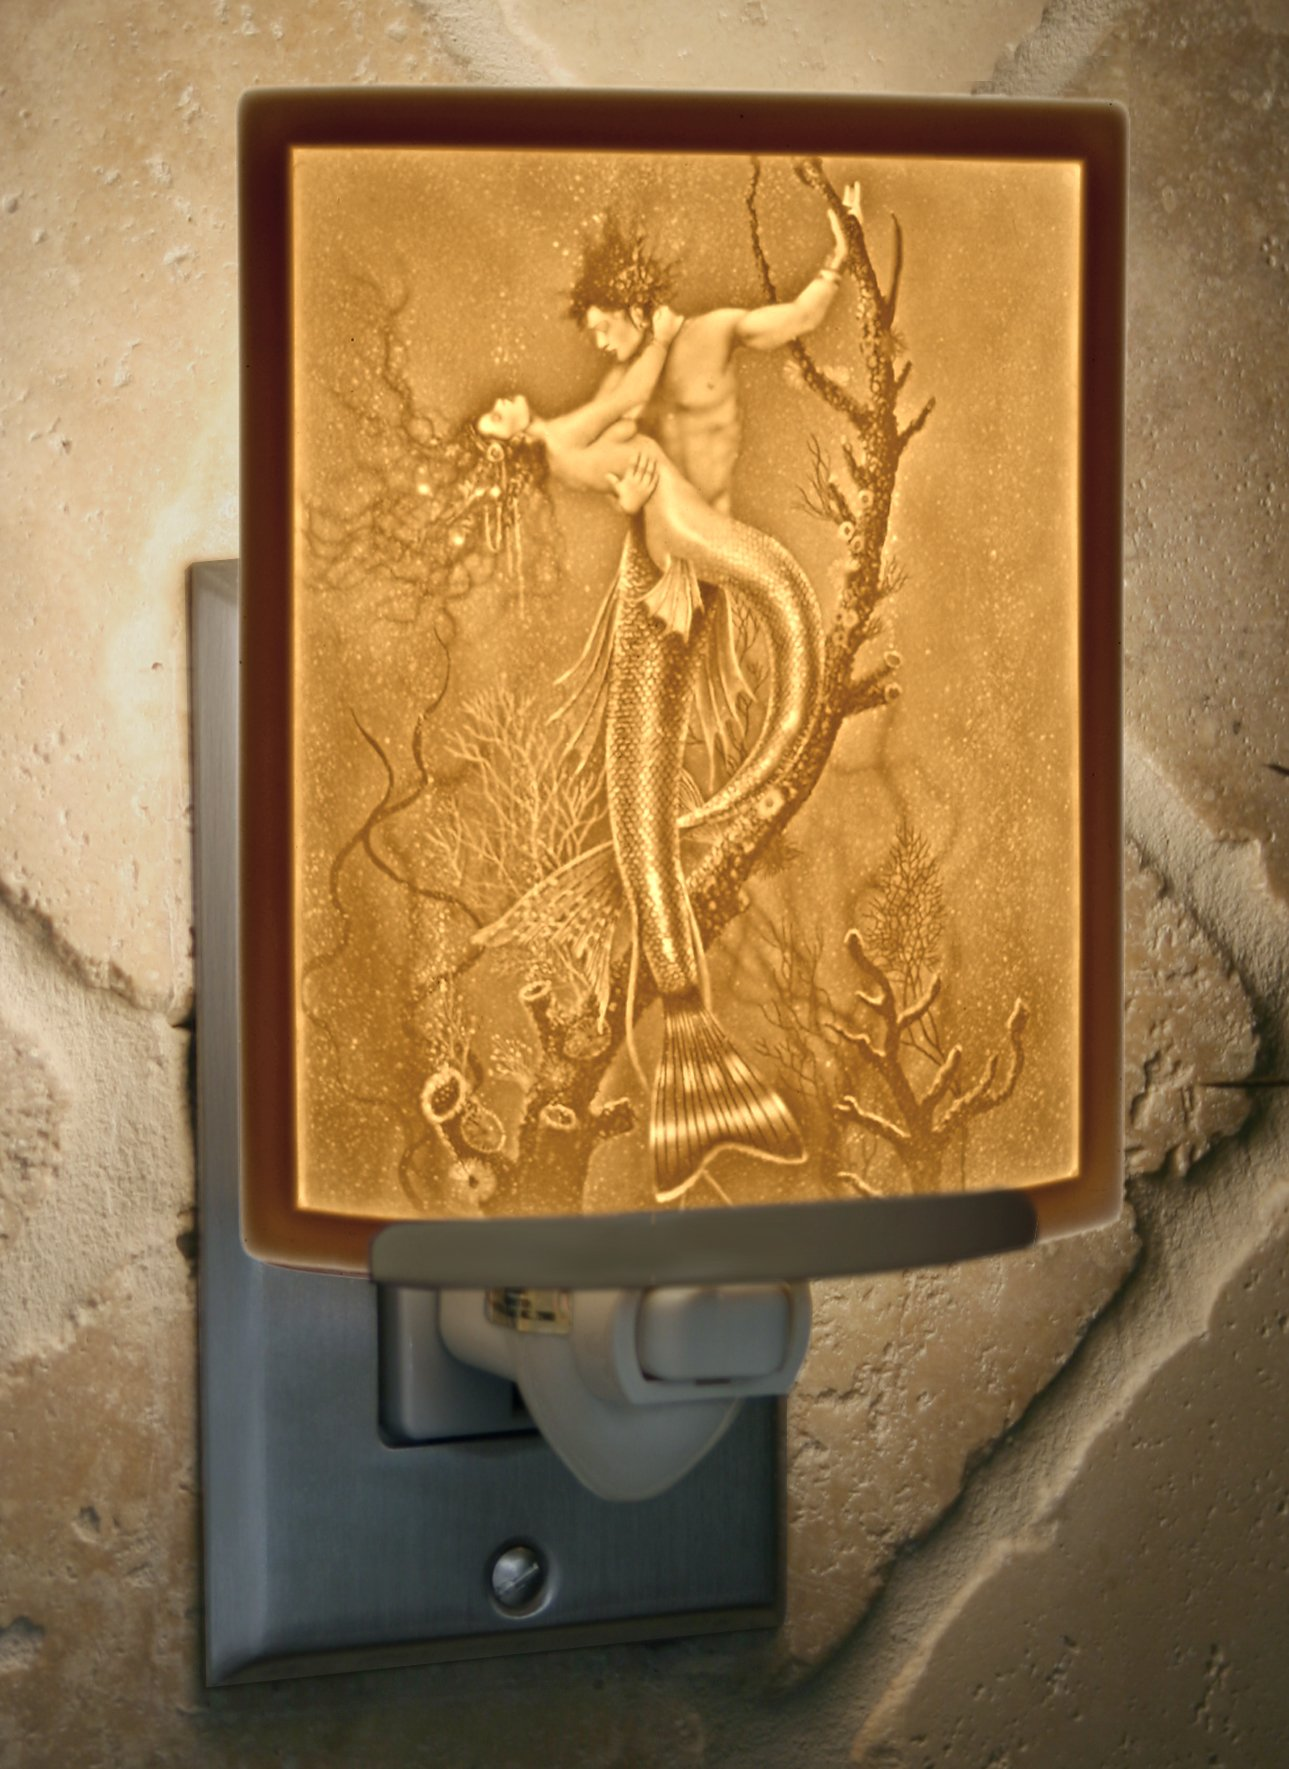 Mermaid & Merman - Curved Lithophane Porcelain Night Light - Art by David Delamare by The Porcelain Garden (Image #2)